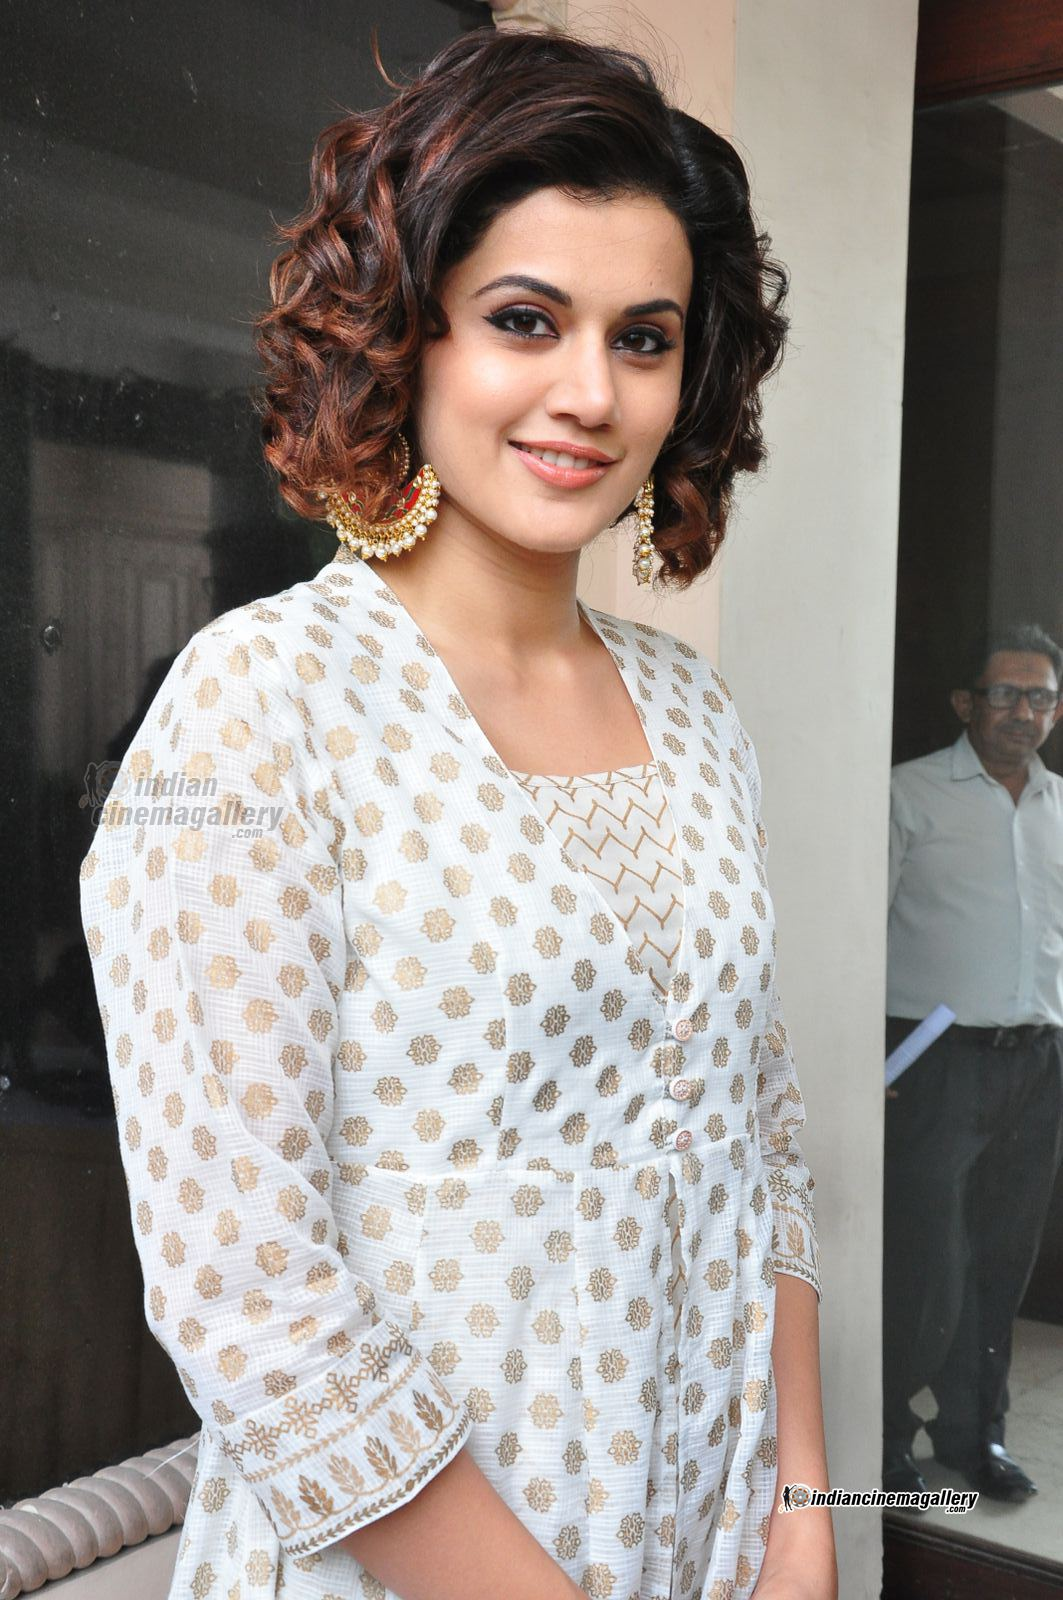 Short haircut for summer: Taapsee Pannu short hairstyles